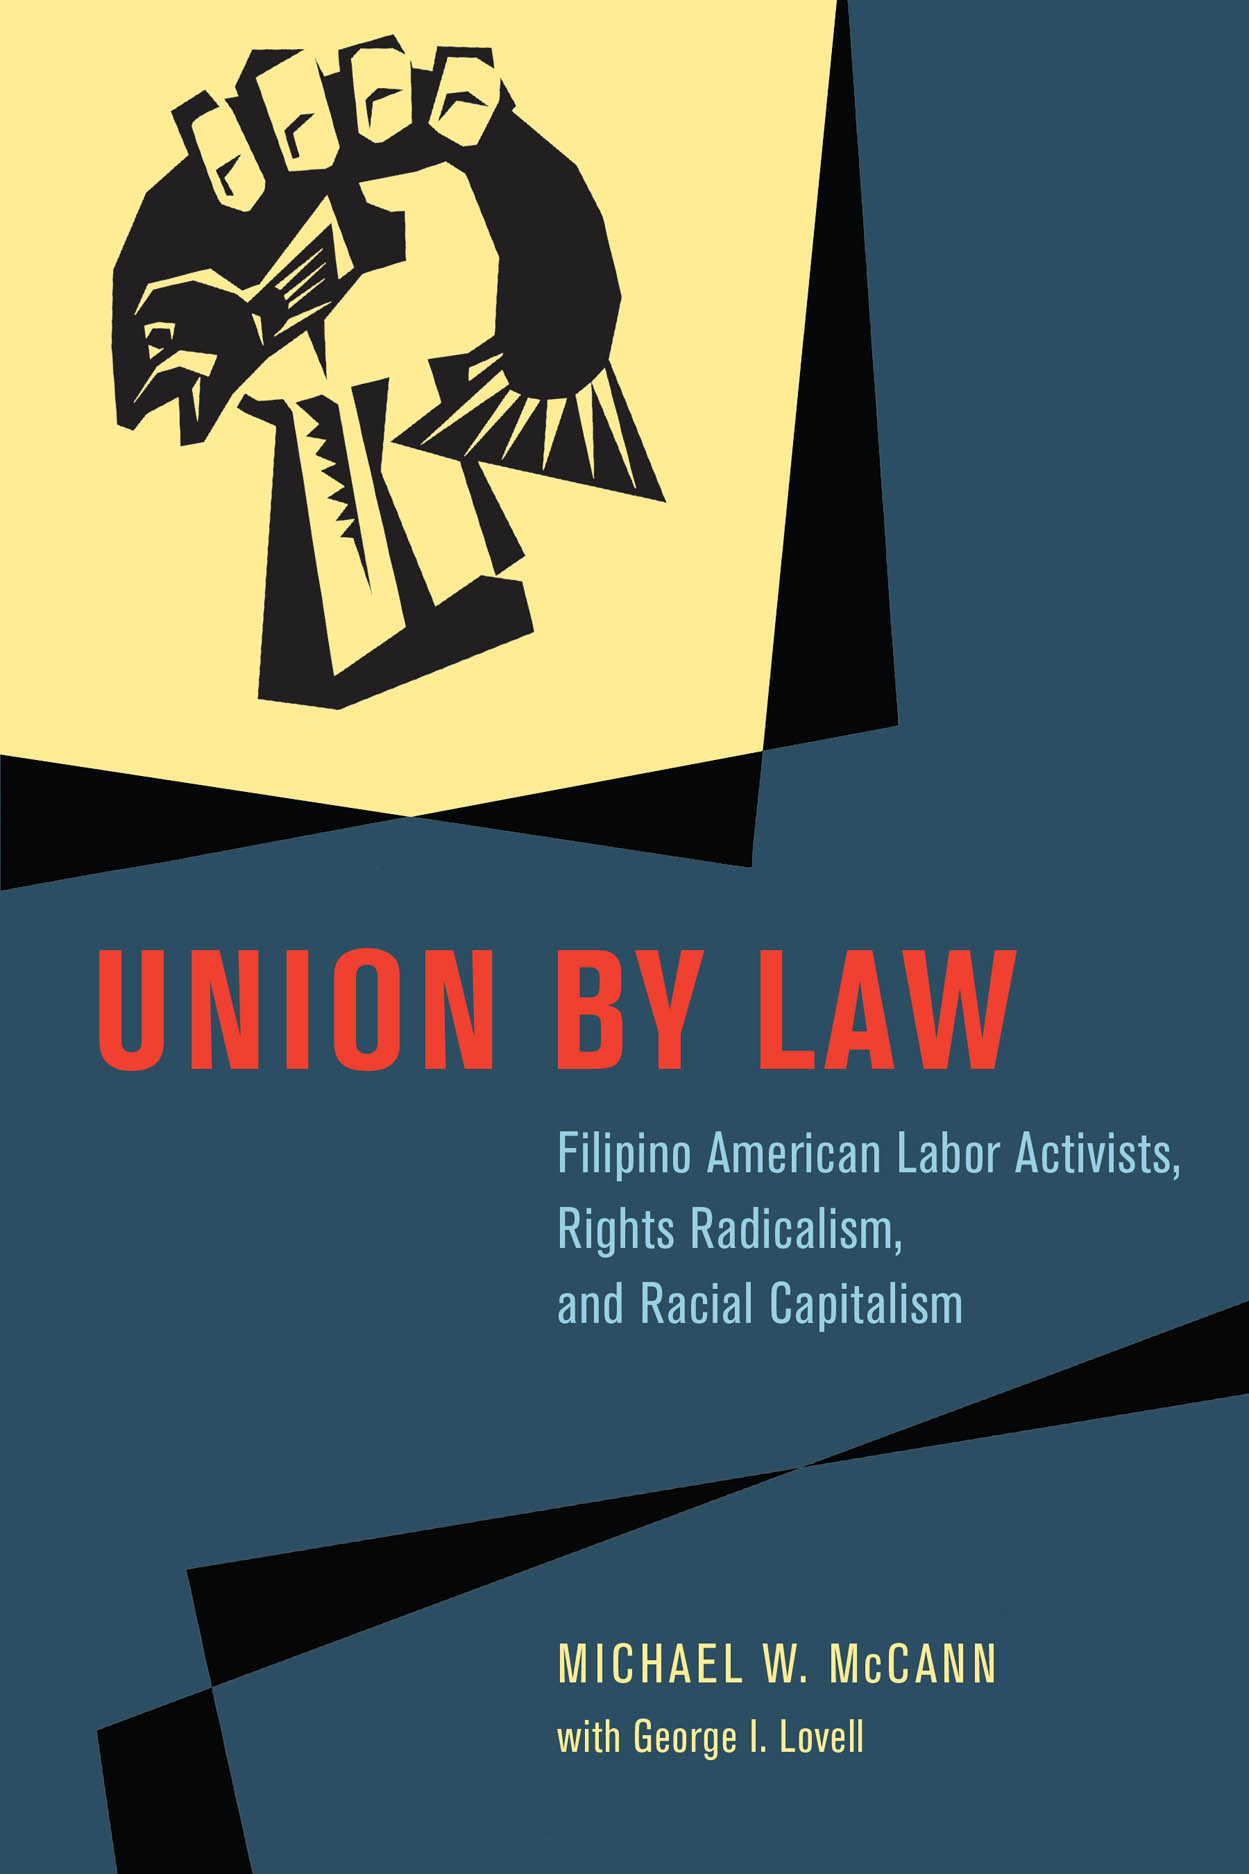 Union by Law: Filipino American Labor Activists, Rights Radicalism, and Racial Capitalism